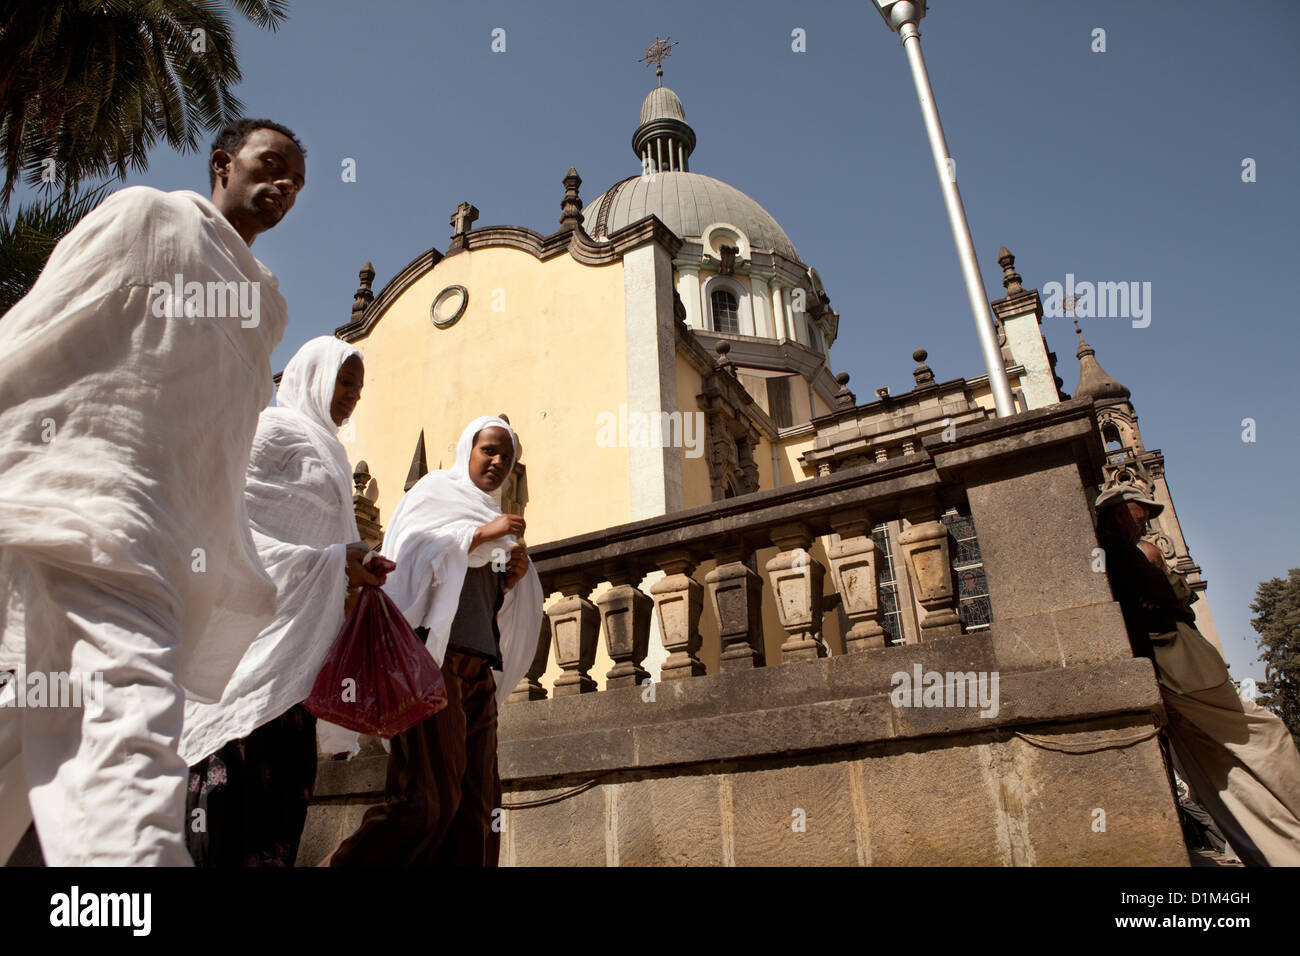 Holy Trinity Cathedral in Addis Ababa, Ethiopia. - Stock Image